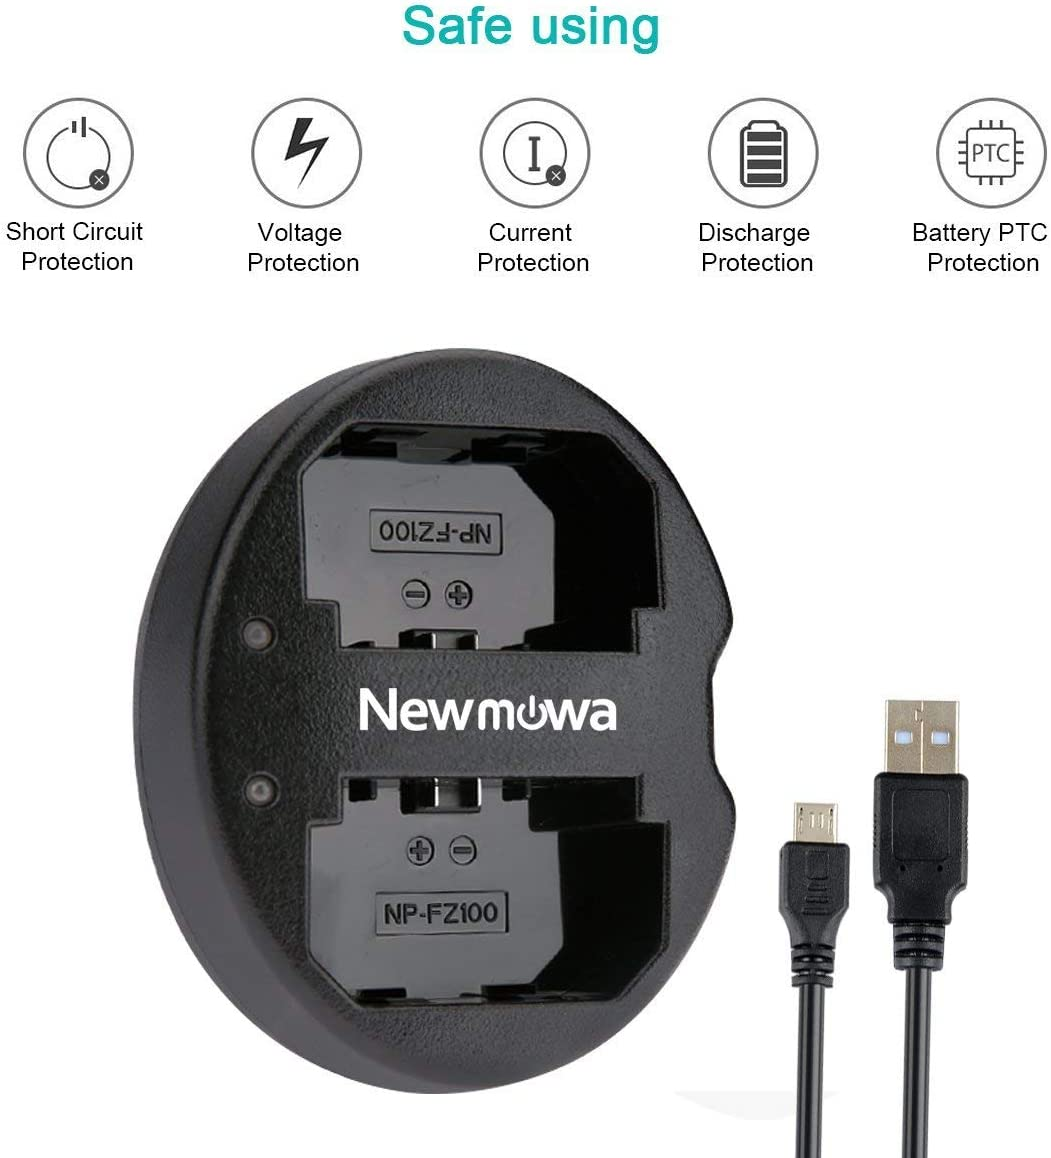 Newmowa Dual USB Charger for Sony NP-FZ100, BC-QZ1 and Sony a6600, Alpha 9, Sony A9, Sony Alpha 9R, Sony A9R, Sony Alpha 9S, Sony A7RIII, A7R3, Sony ...